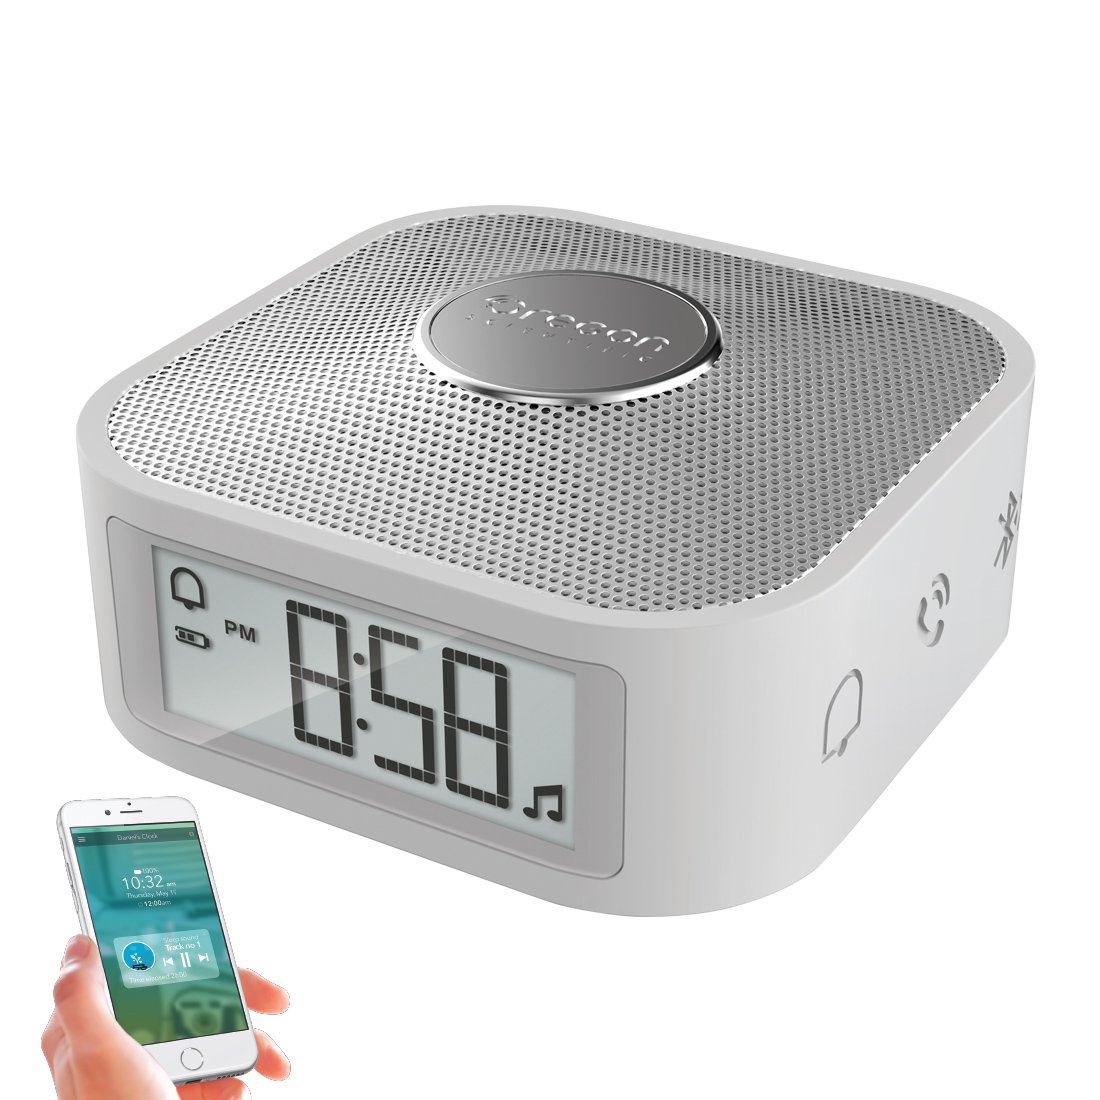 Digital Travel Clock with USB Charging Port and 5 Alarm Options for Heavy Sleepers, Portable Alarm Clock with Bluetooth Speaker (Silver)